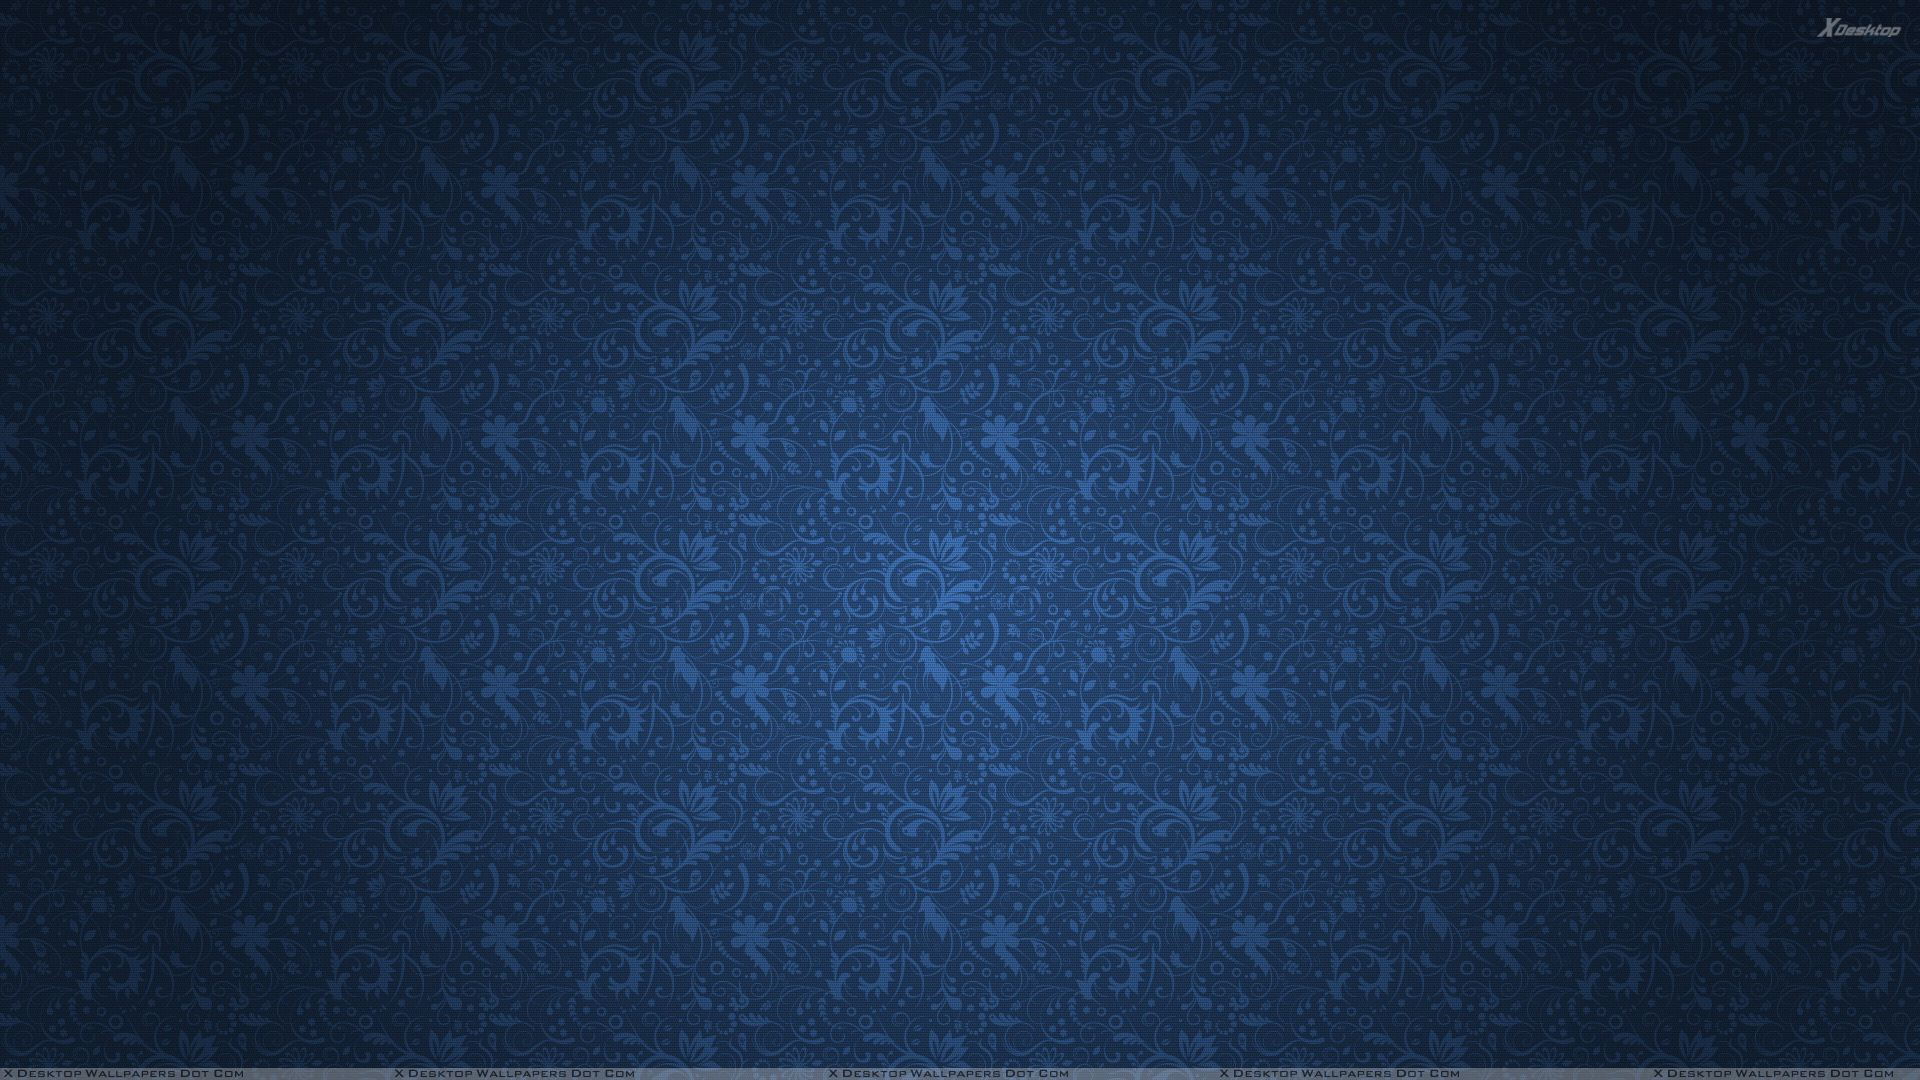 Loyalty Solutions Nigeria Blue Abstract Background With Flowers On It Loyalty Solutions Nigeria